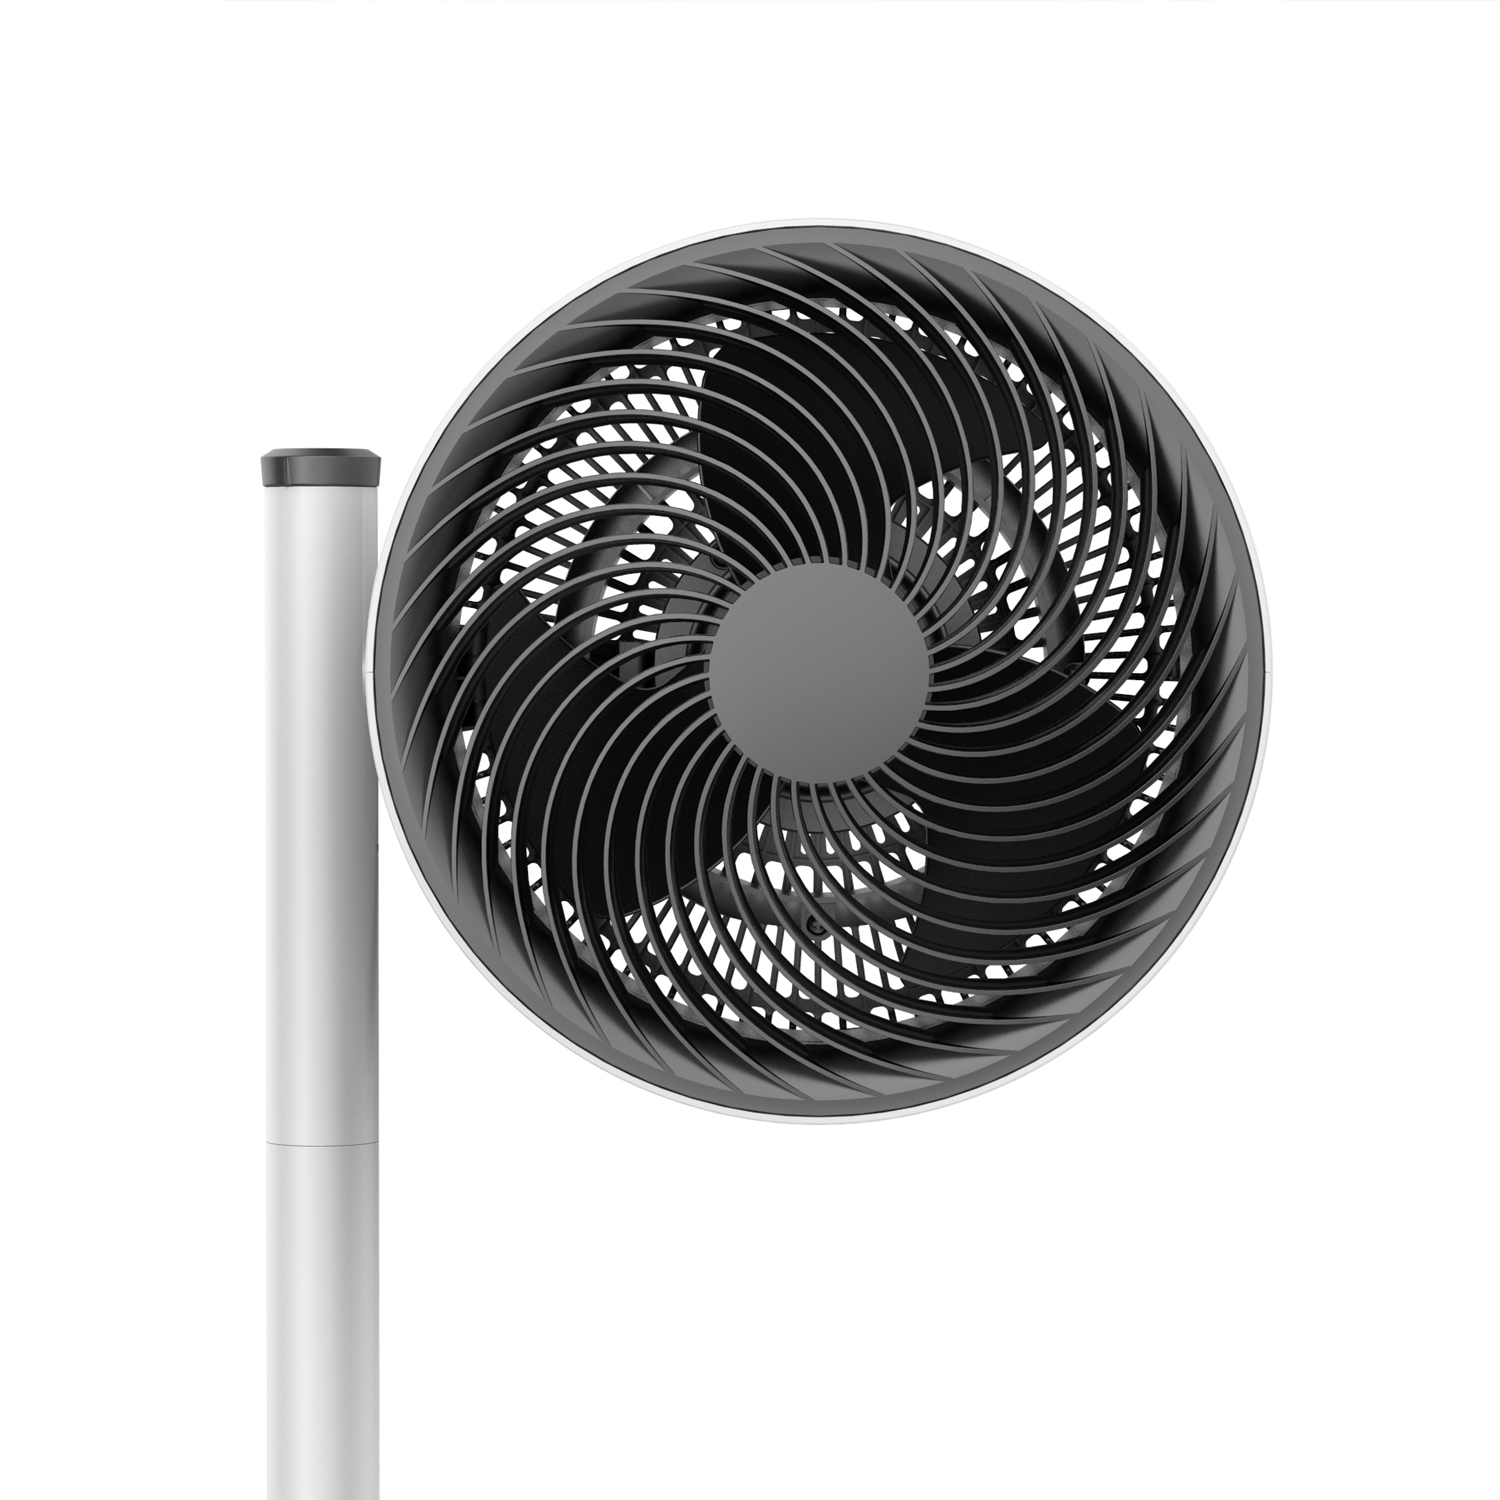 Industrial design of the new domestic fan range for Boneco Healthy Air